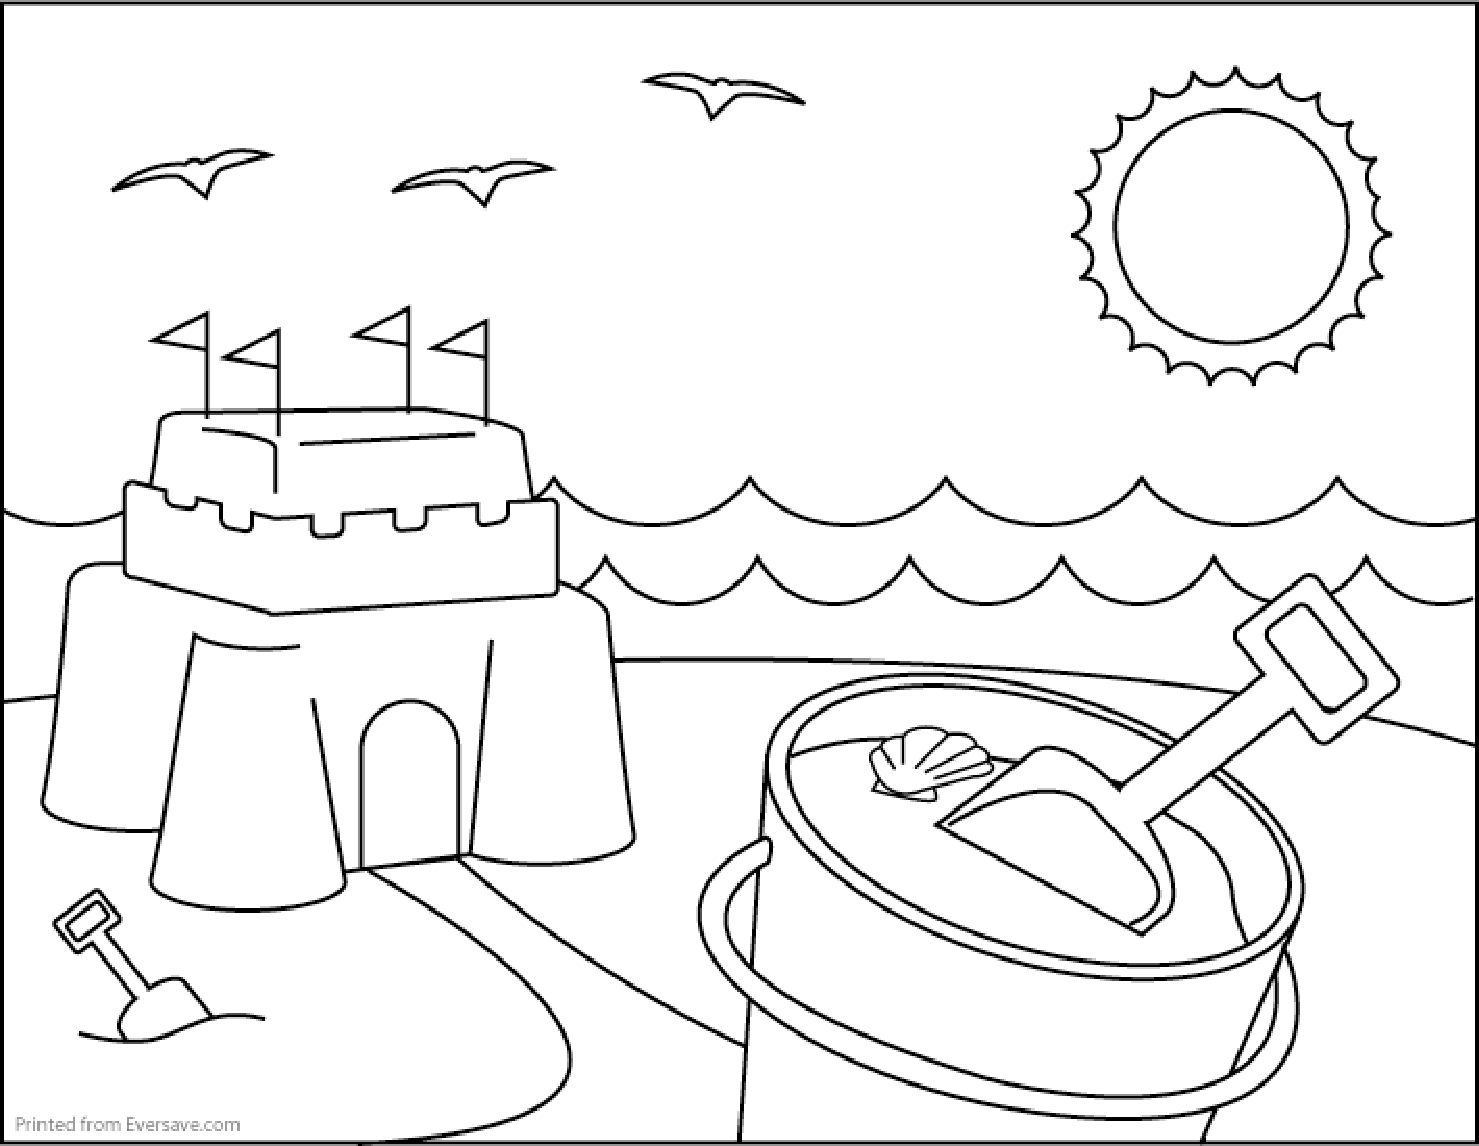 Kids coloring book pages free - Summer Coloring Pages Free Online Printable Coloring Pages Sheets For Kids Get The Latest Free Summer Coloring Pages Images Favorite Coloring Pages To